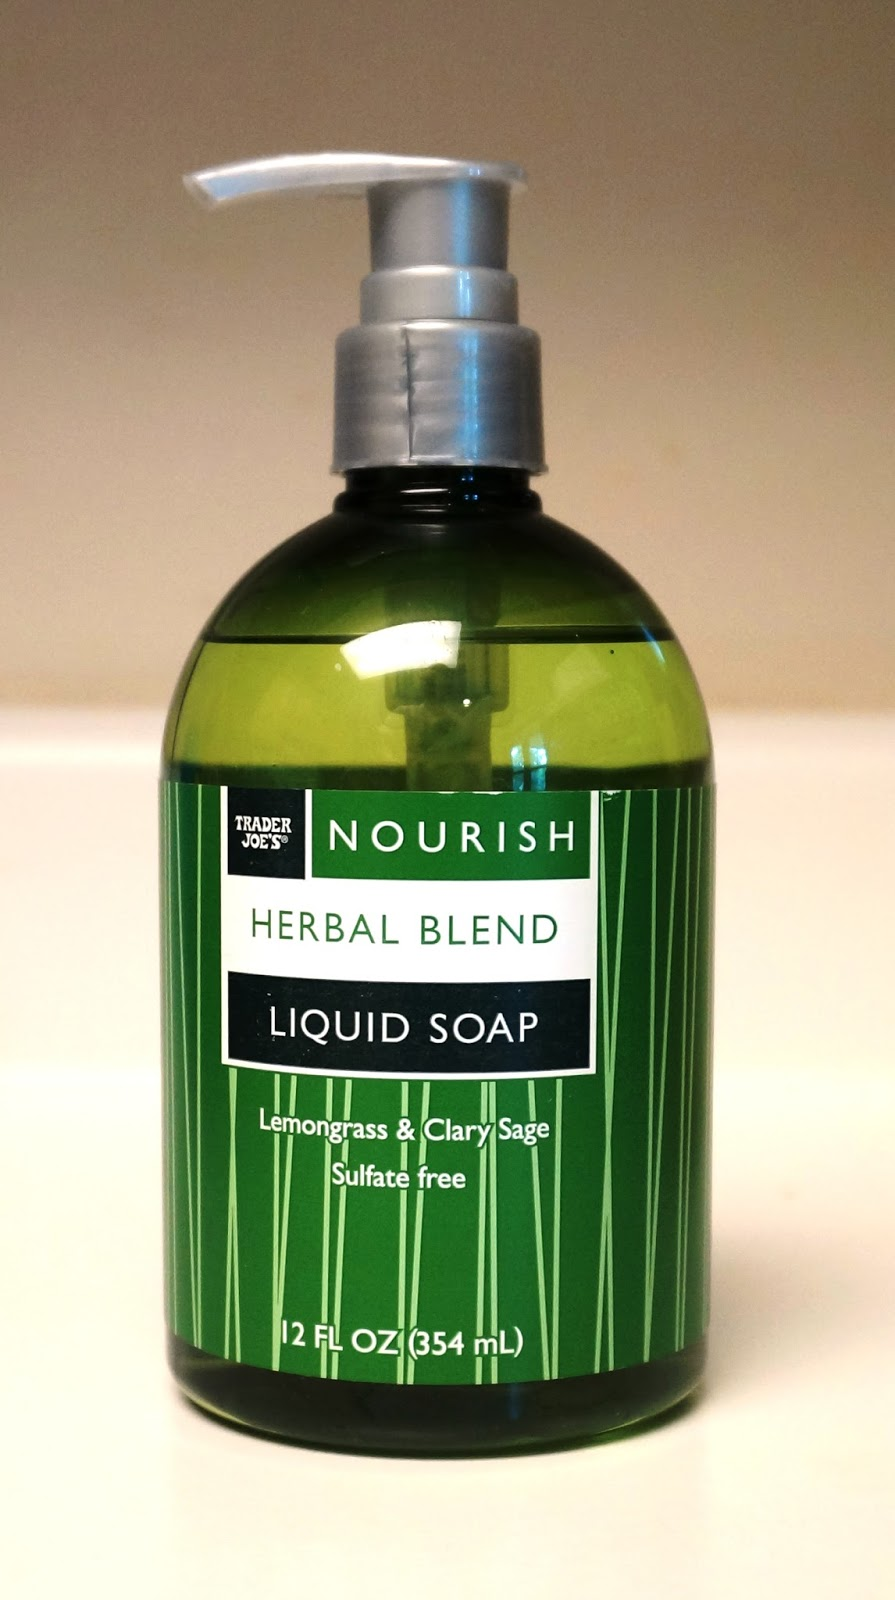 Exploring Trader Joe S Trader Joe S Nourish Herbal Blend